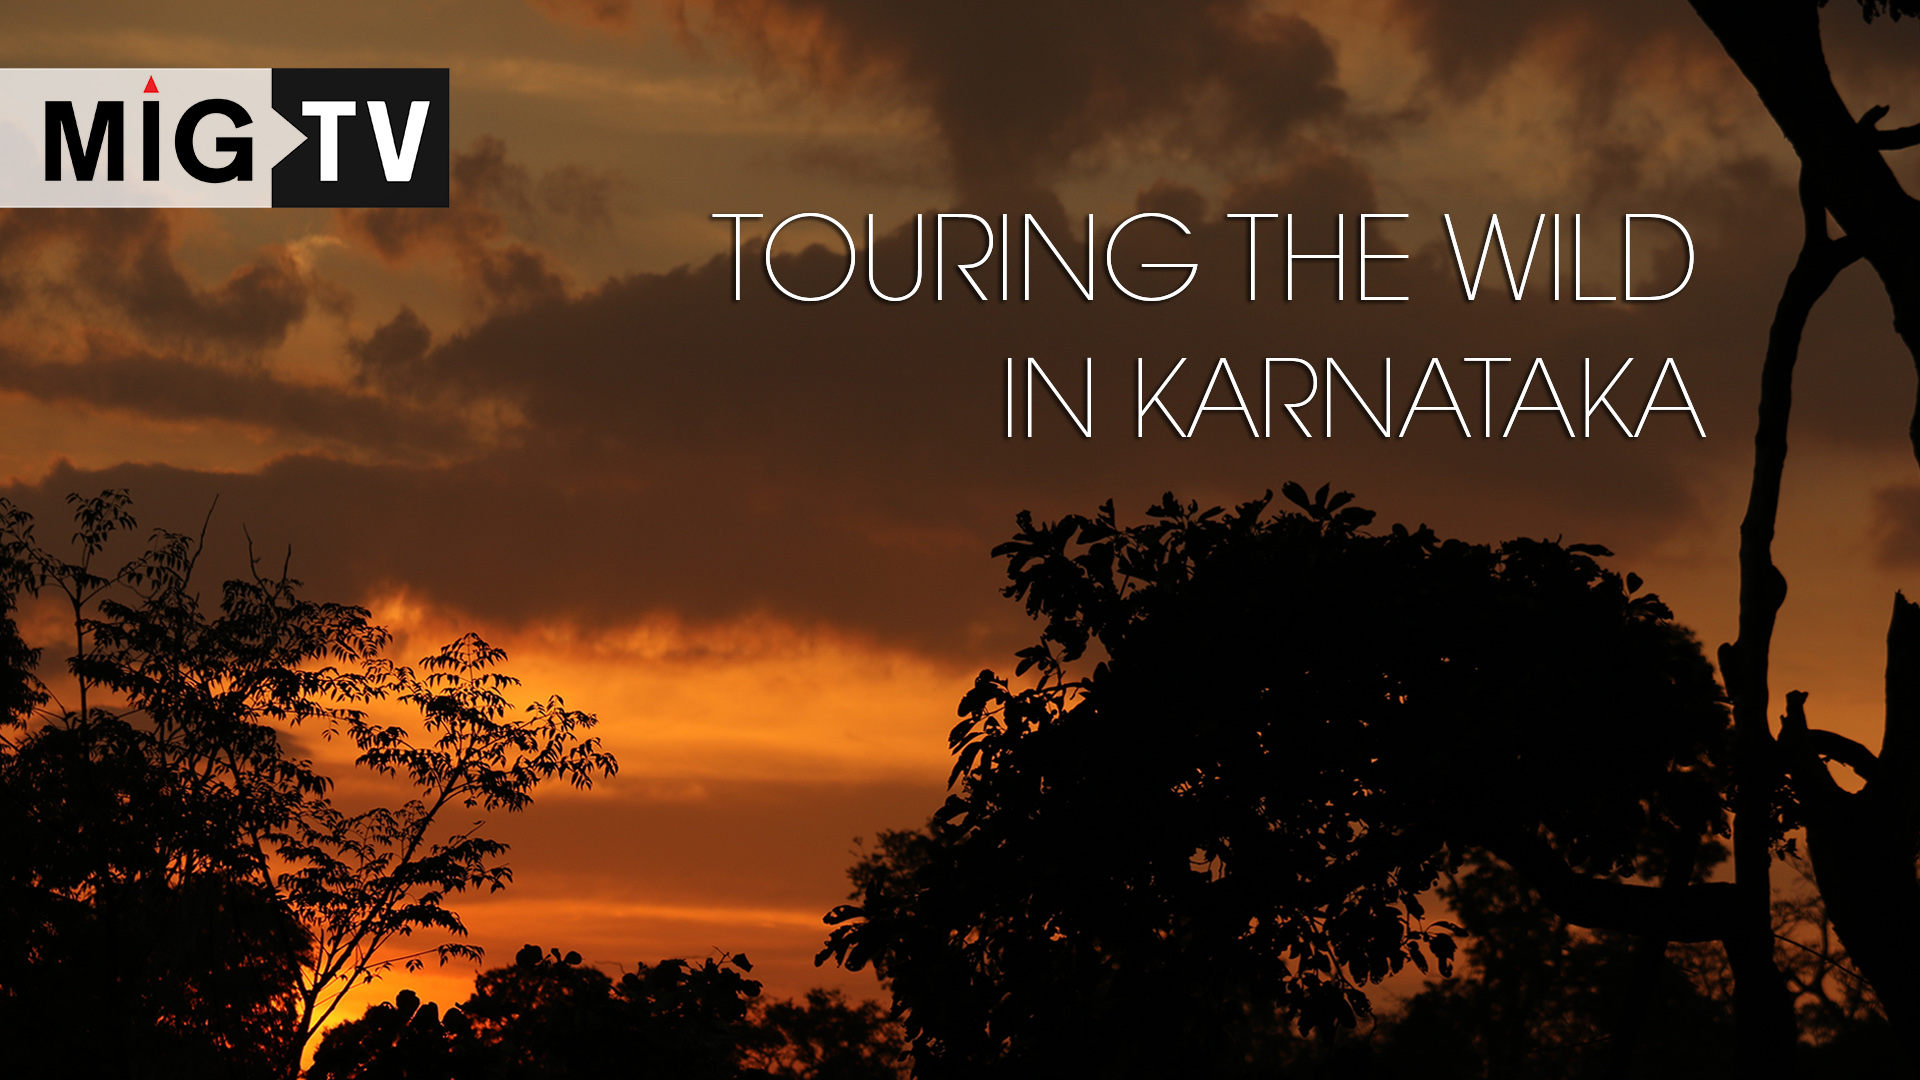 Touring the wild in Karnataka